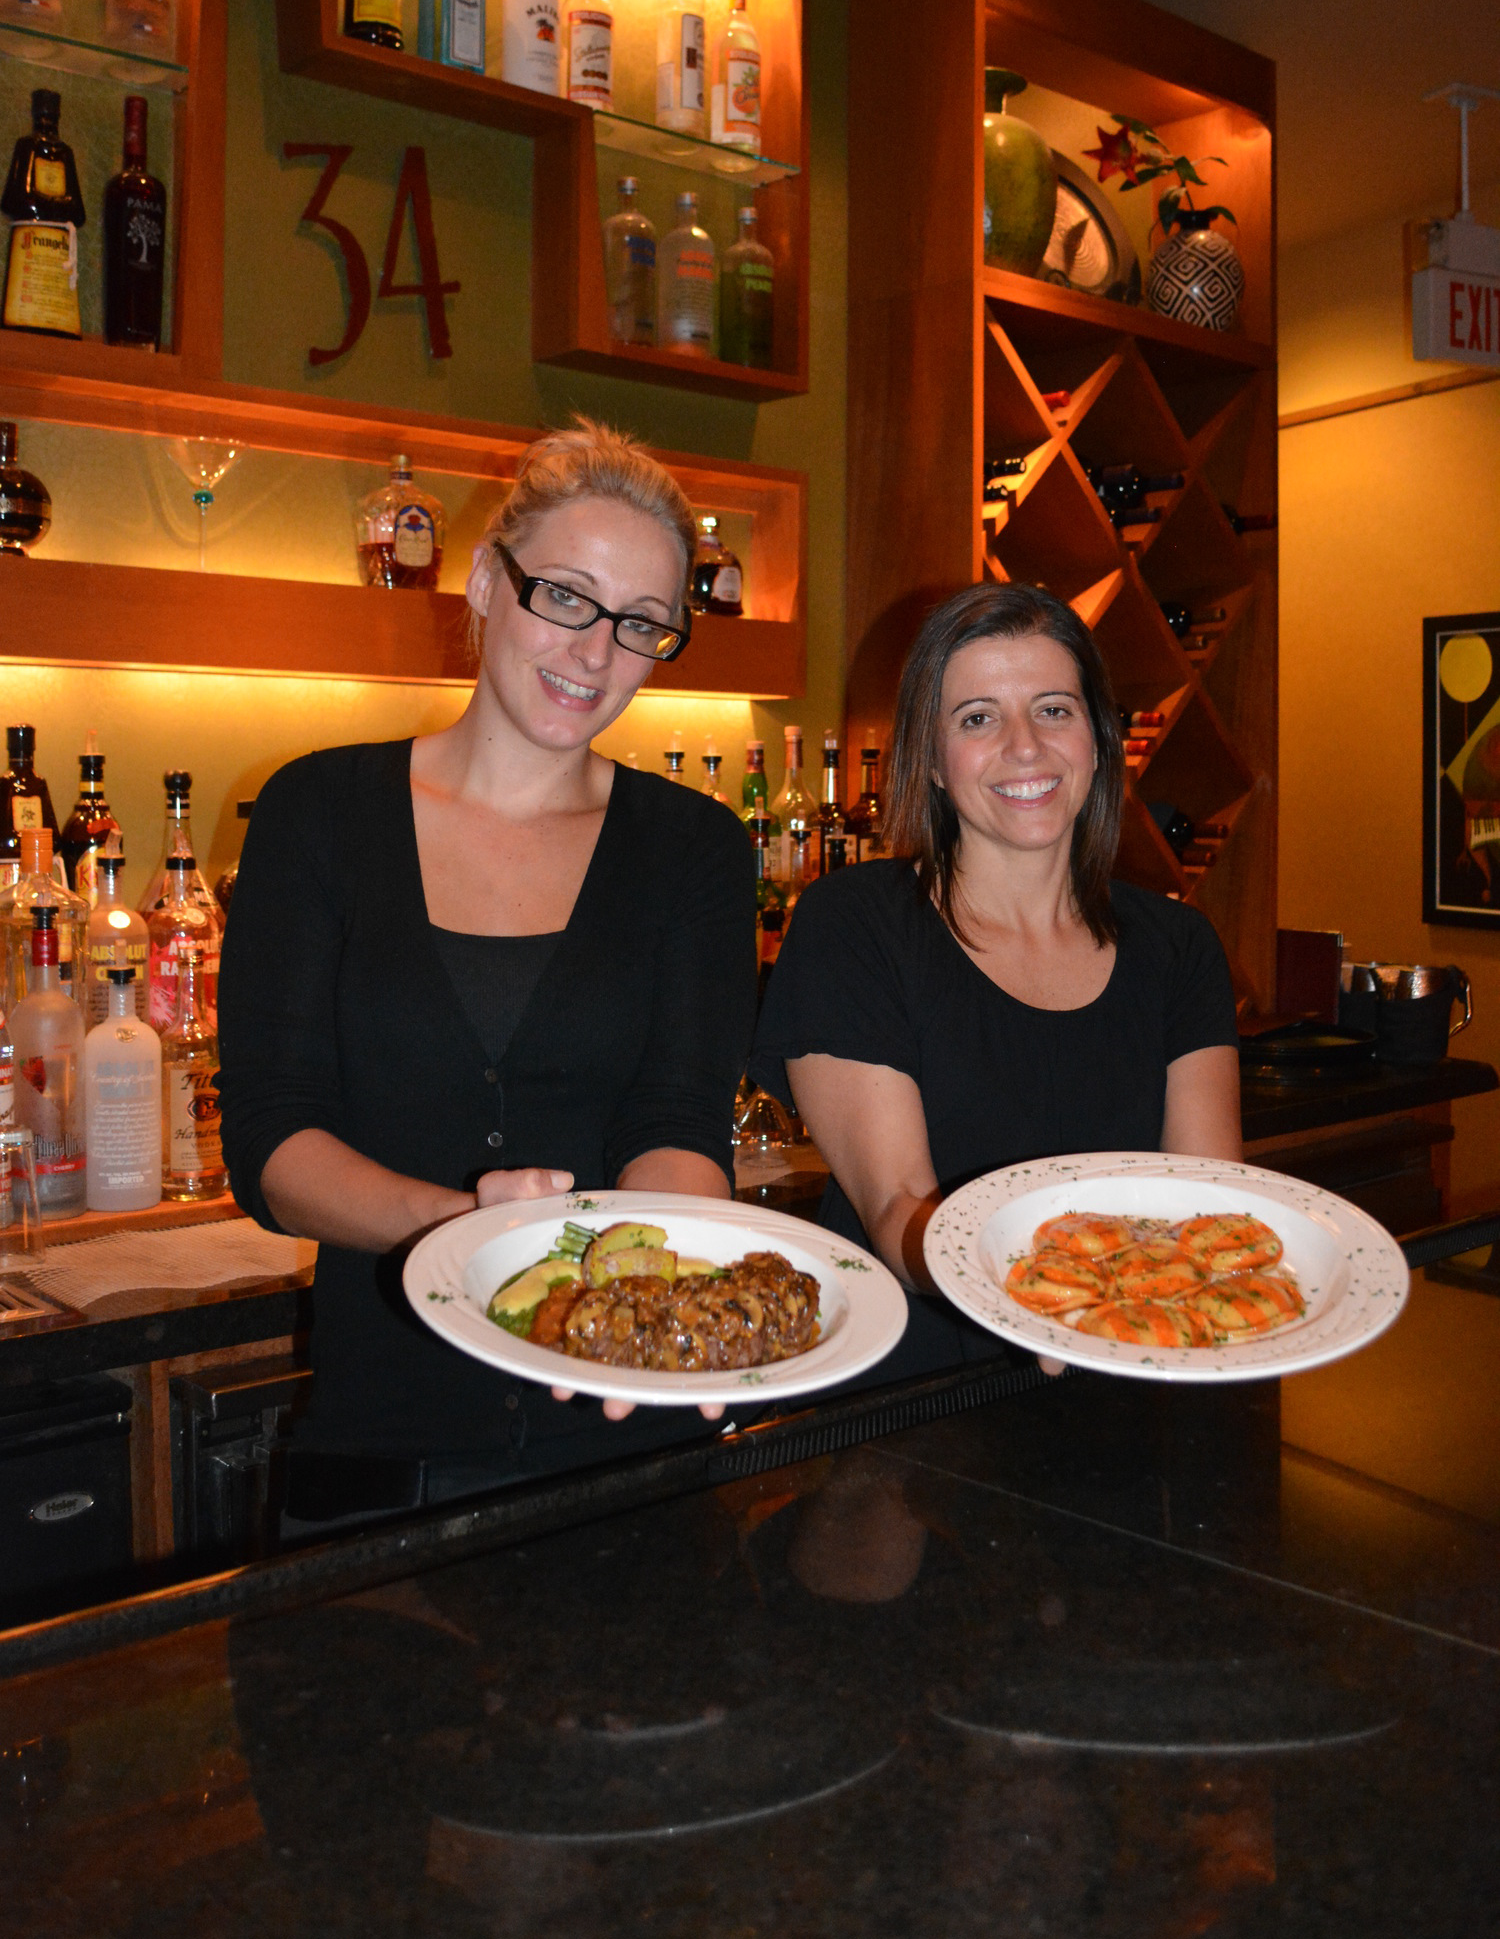 From left, waitress Alexa Pryor and manager Lisa Hockney respectively display Steak Medallions in Marsala Cream Sauce and Pumpkin Ravioli at 34 New Street, known for its creative world cuisine.